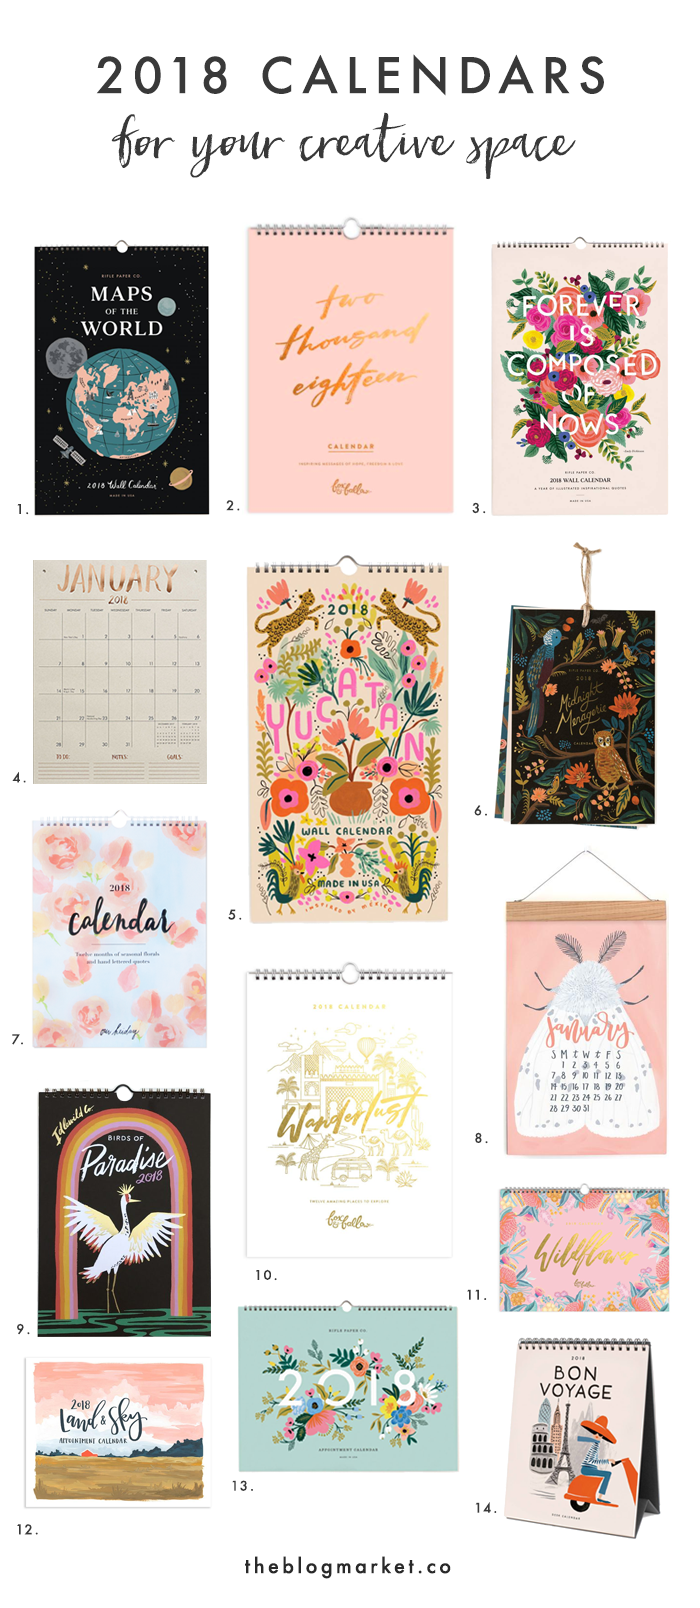 Best 2018 Calendars for your Creative Space | The Blog Market